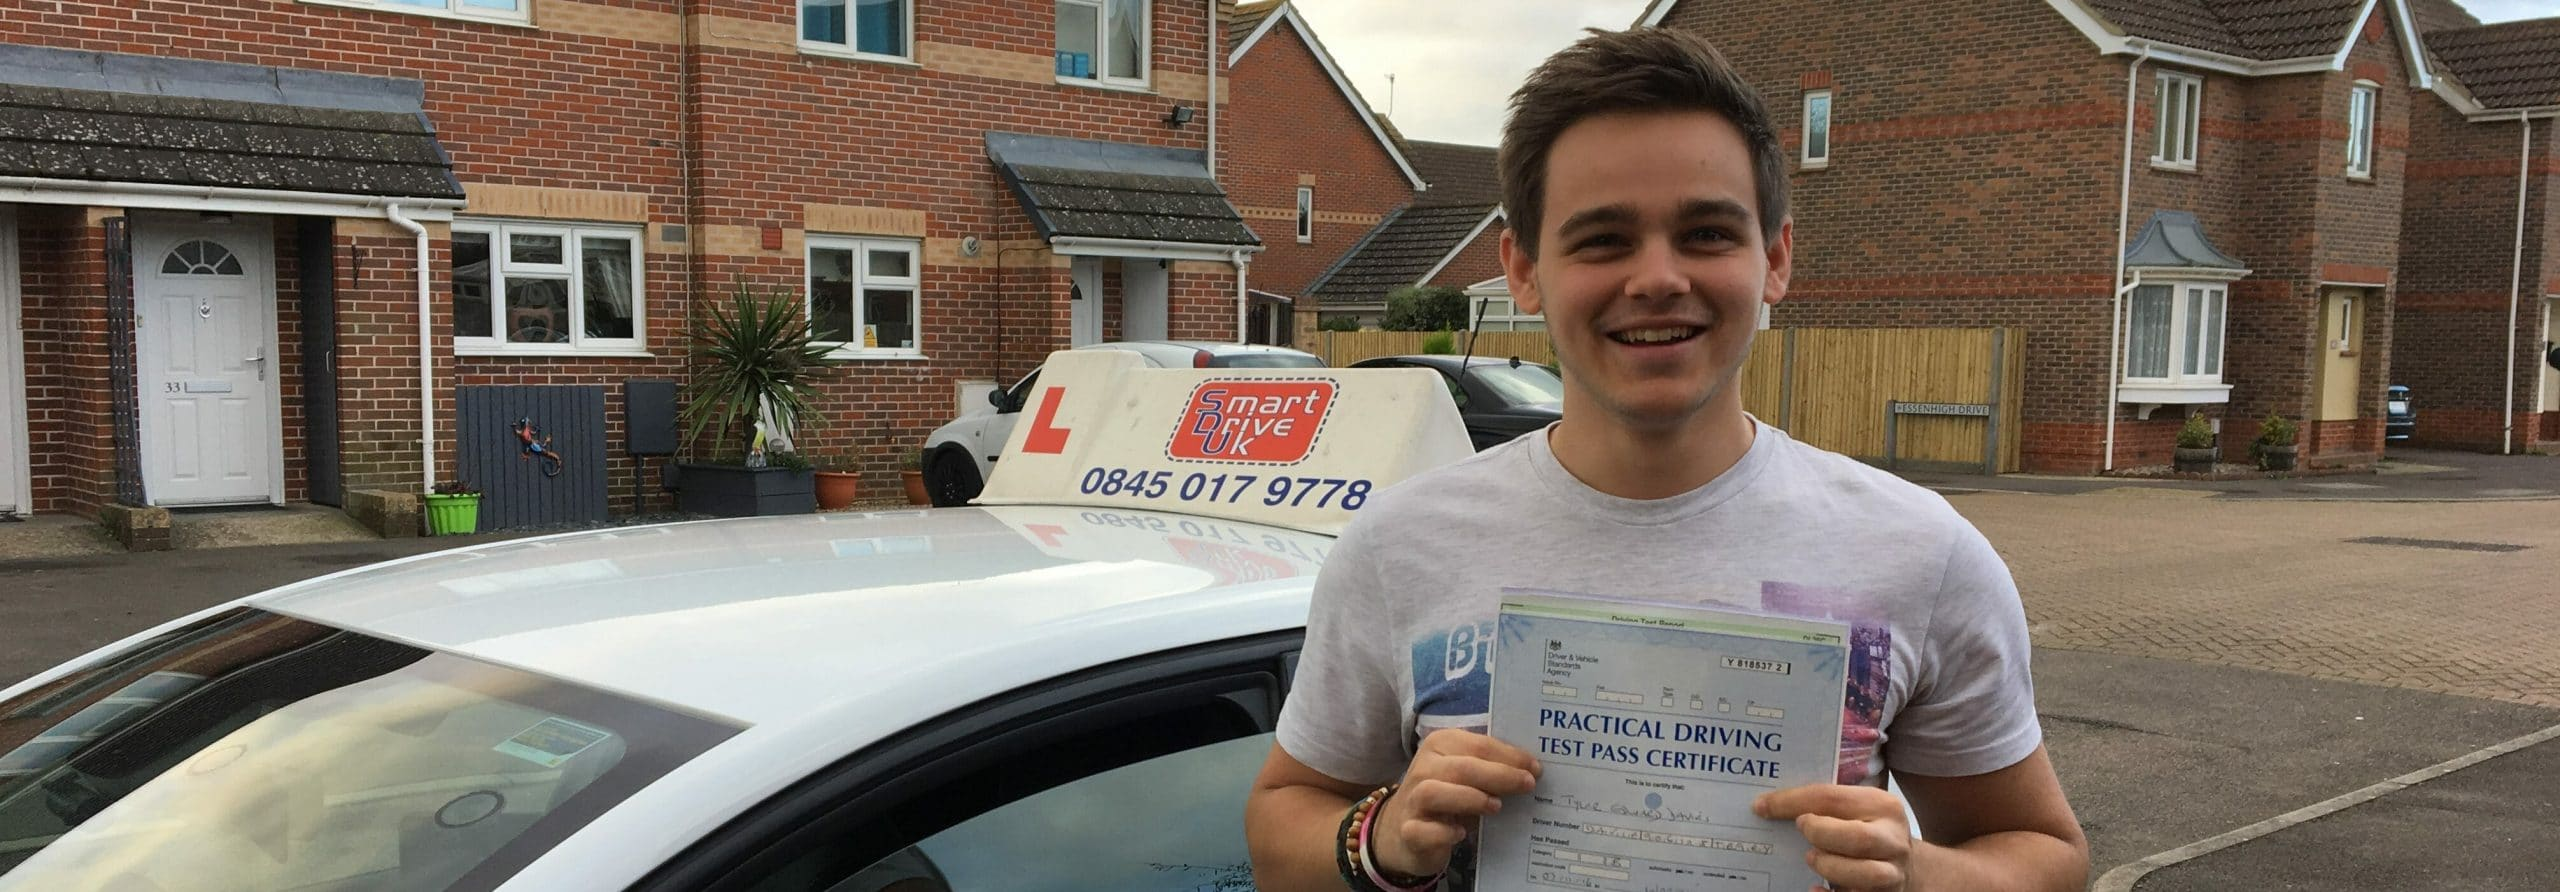 First Time Pass!! Congratulations to Tyler of Worthing